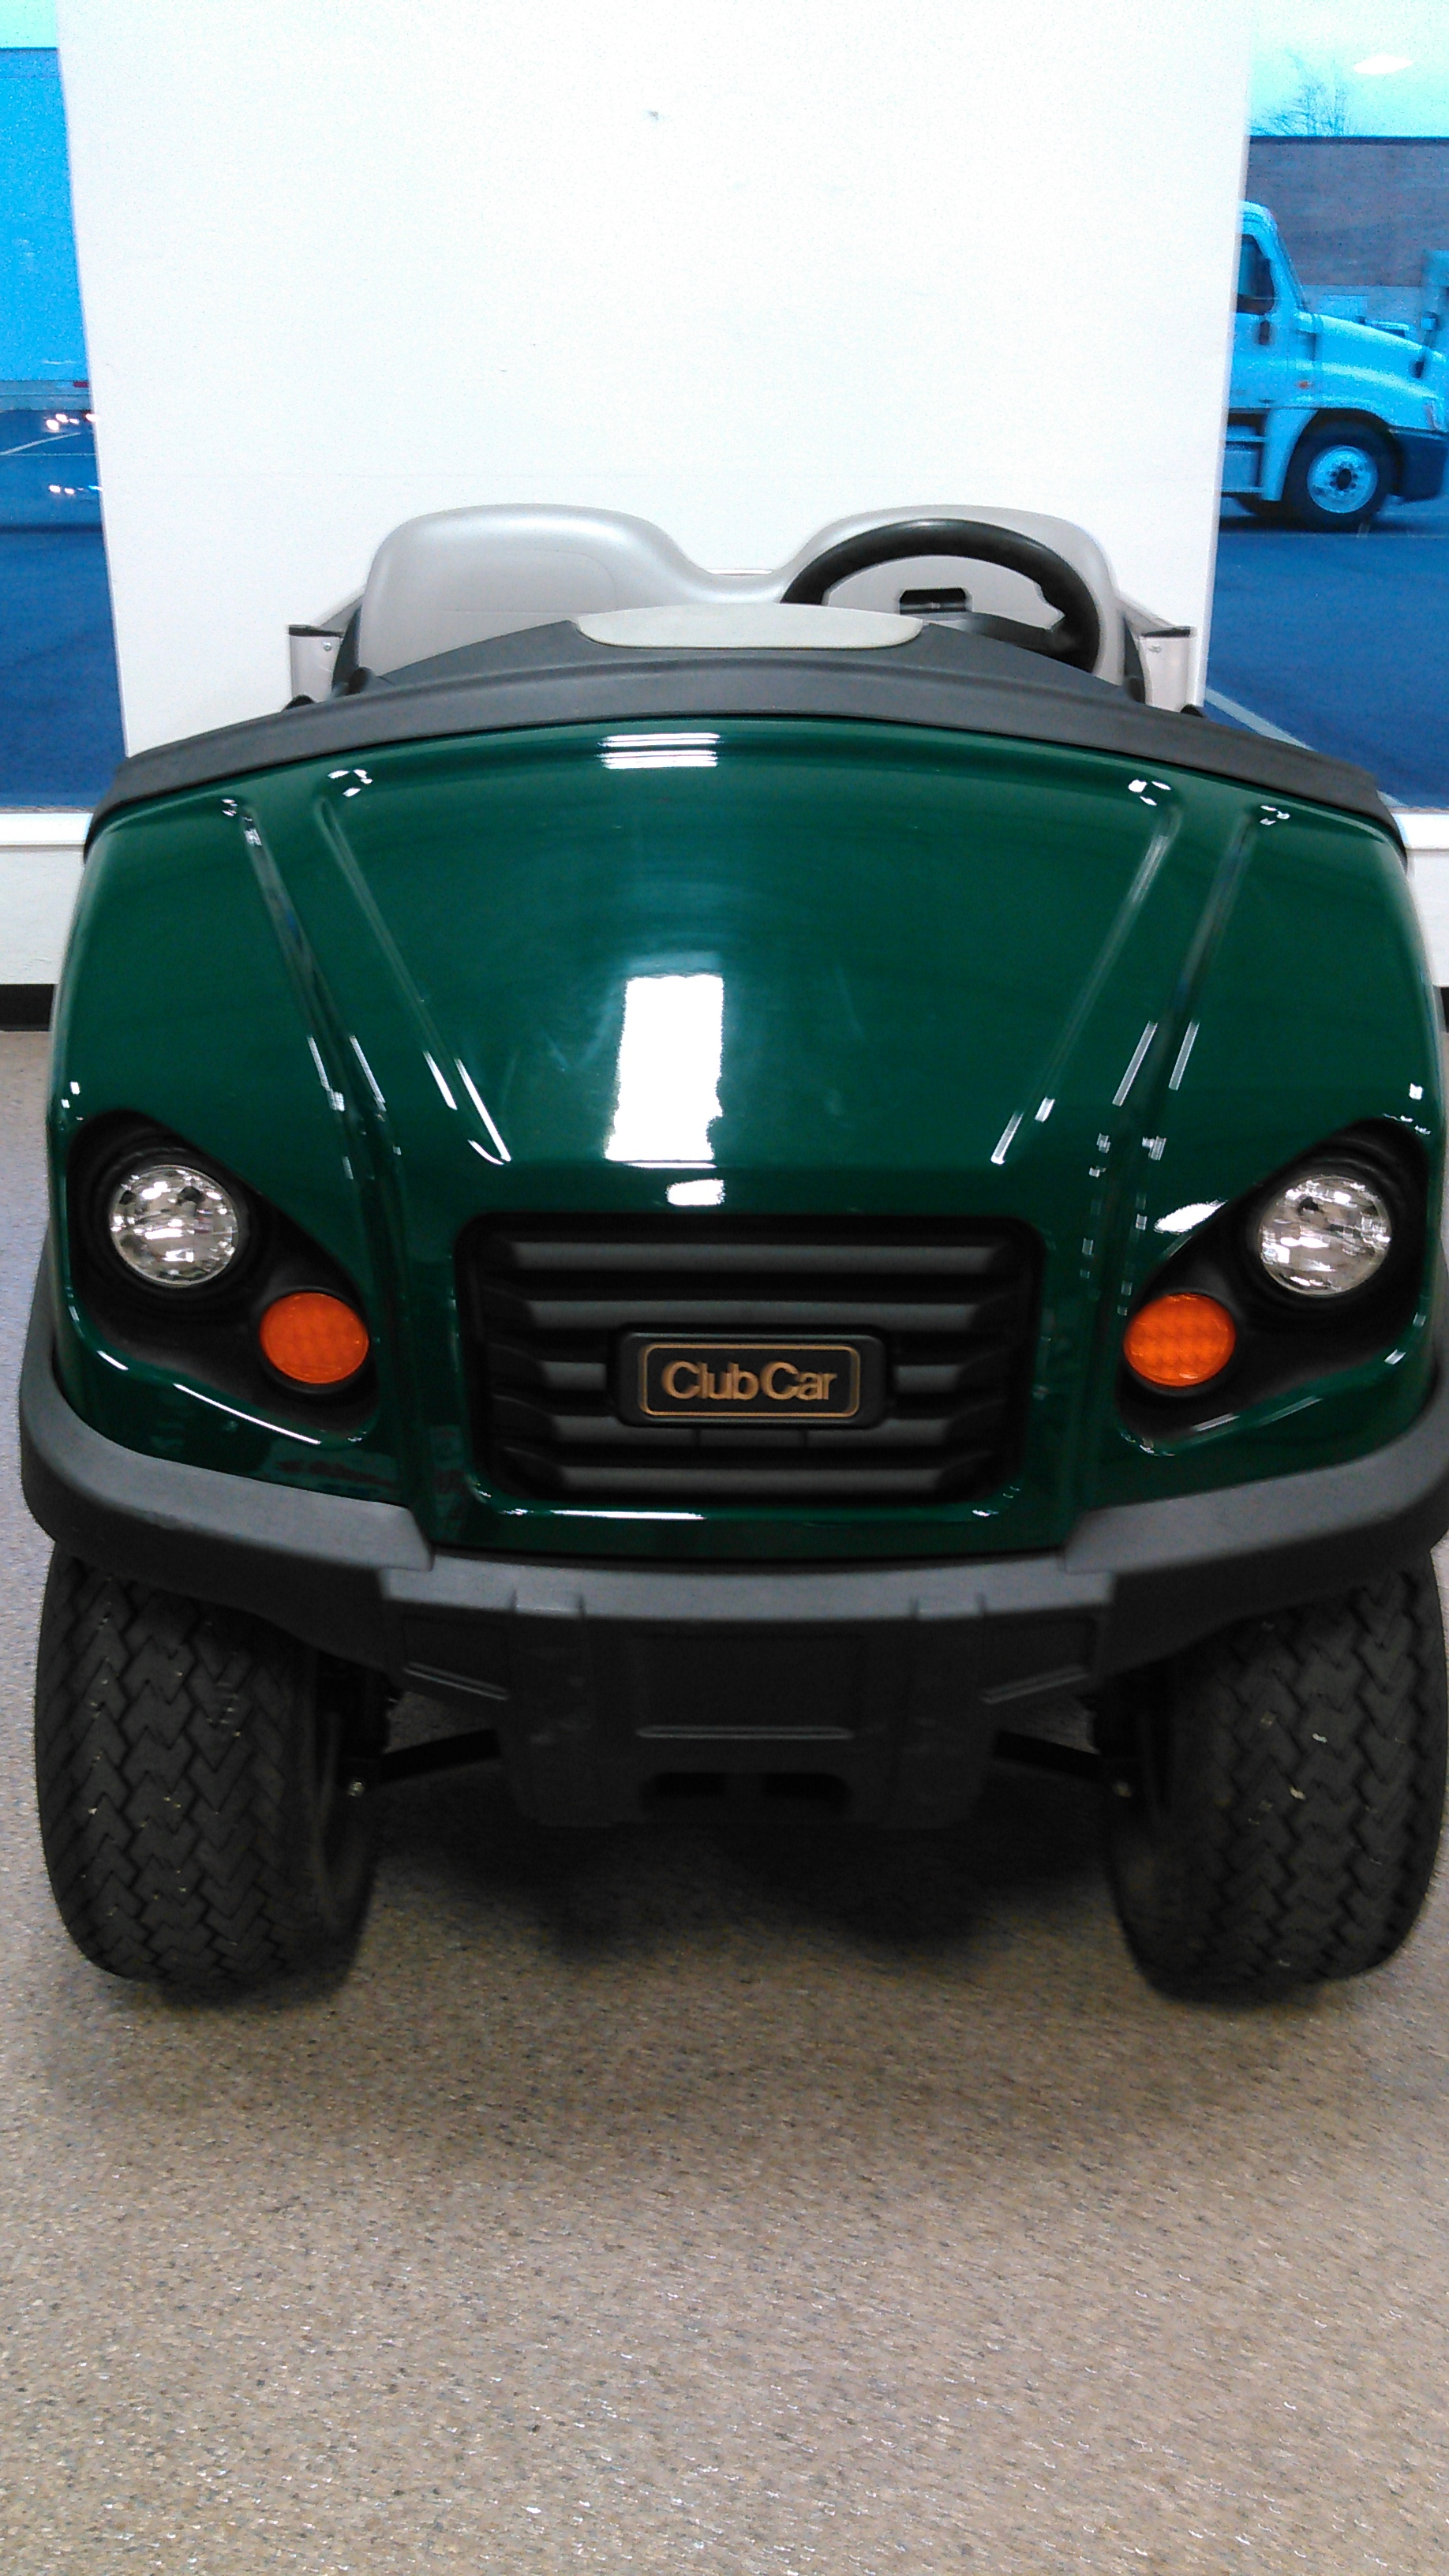 Featured Image for Club Car Carryall 500